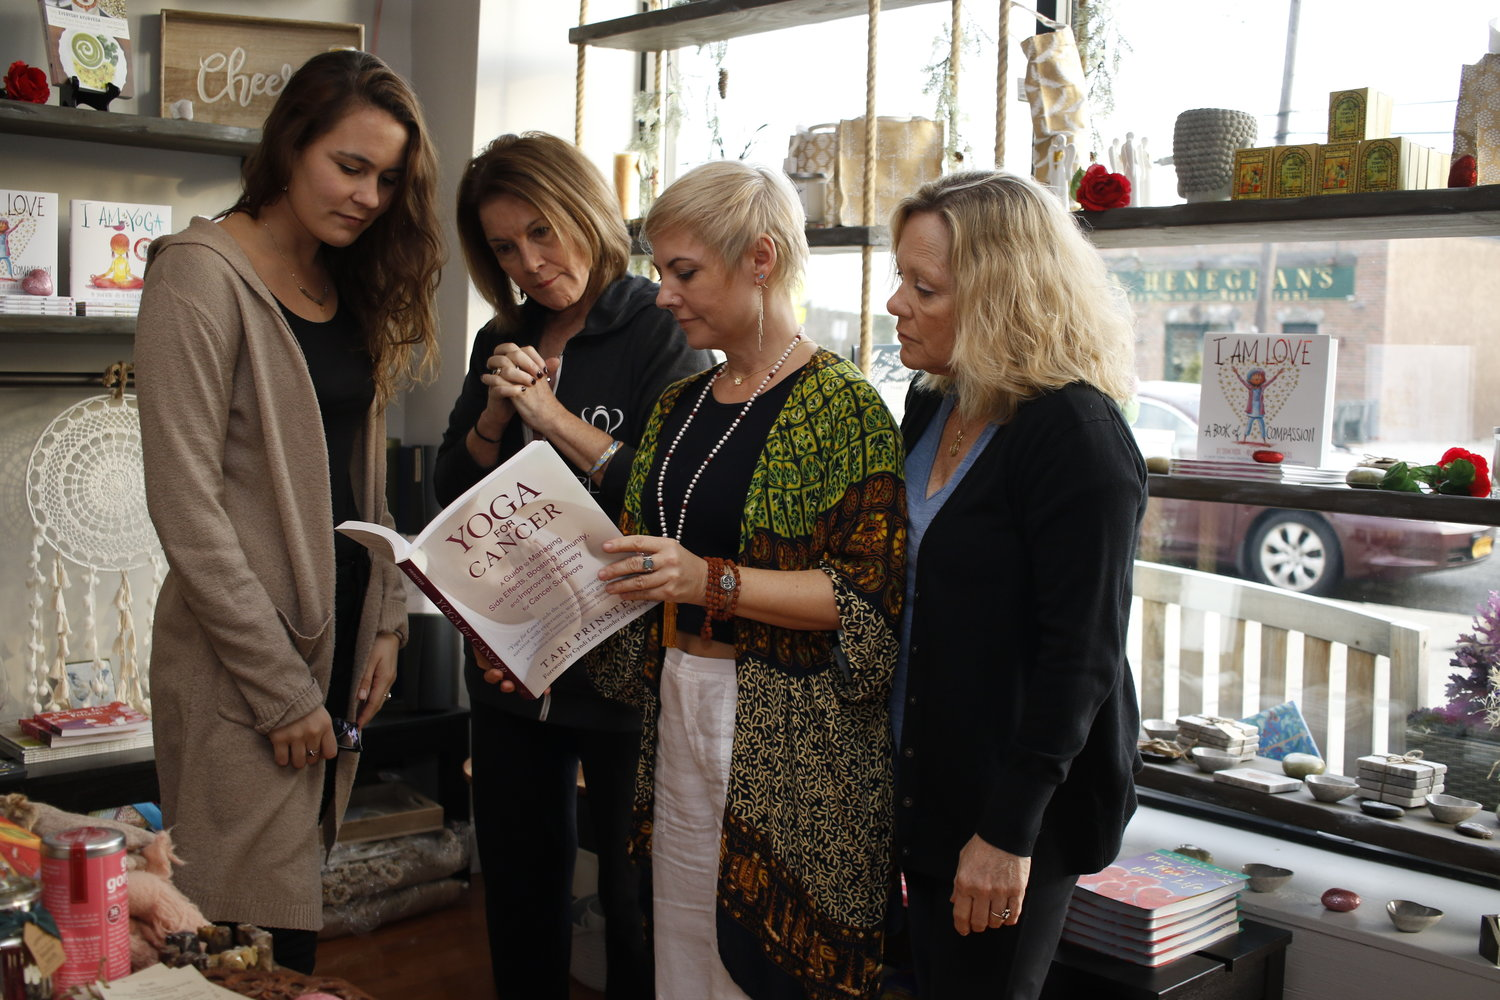 Yoga instructor Samantha Wondsel, far left, student Cathy Duffy, studio owner Laura Shockley and student Rosemary Gibson, conferred over a book written by Tari Prinster, about methods of training people with cancer.